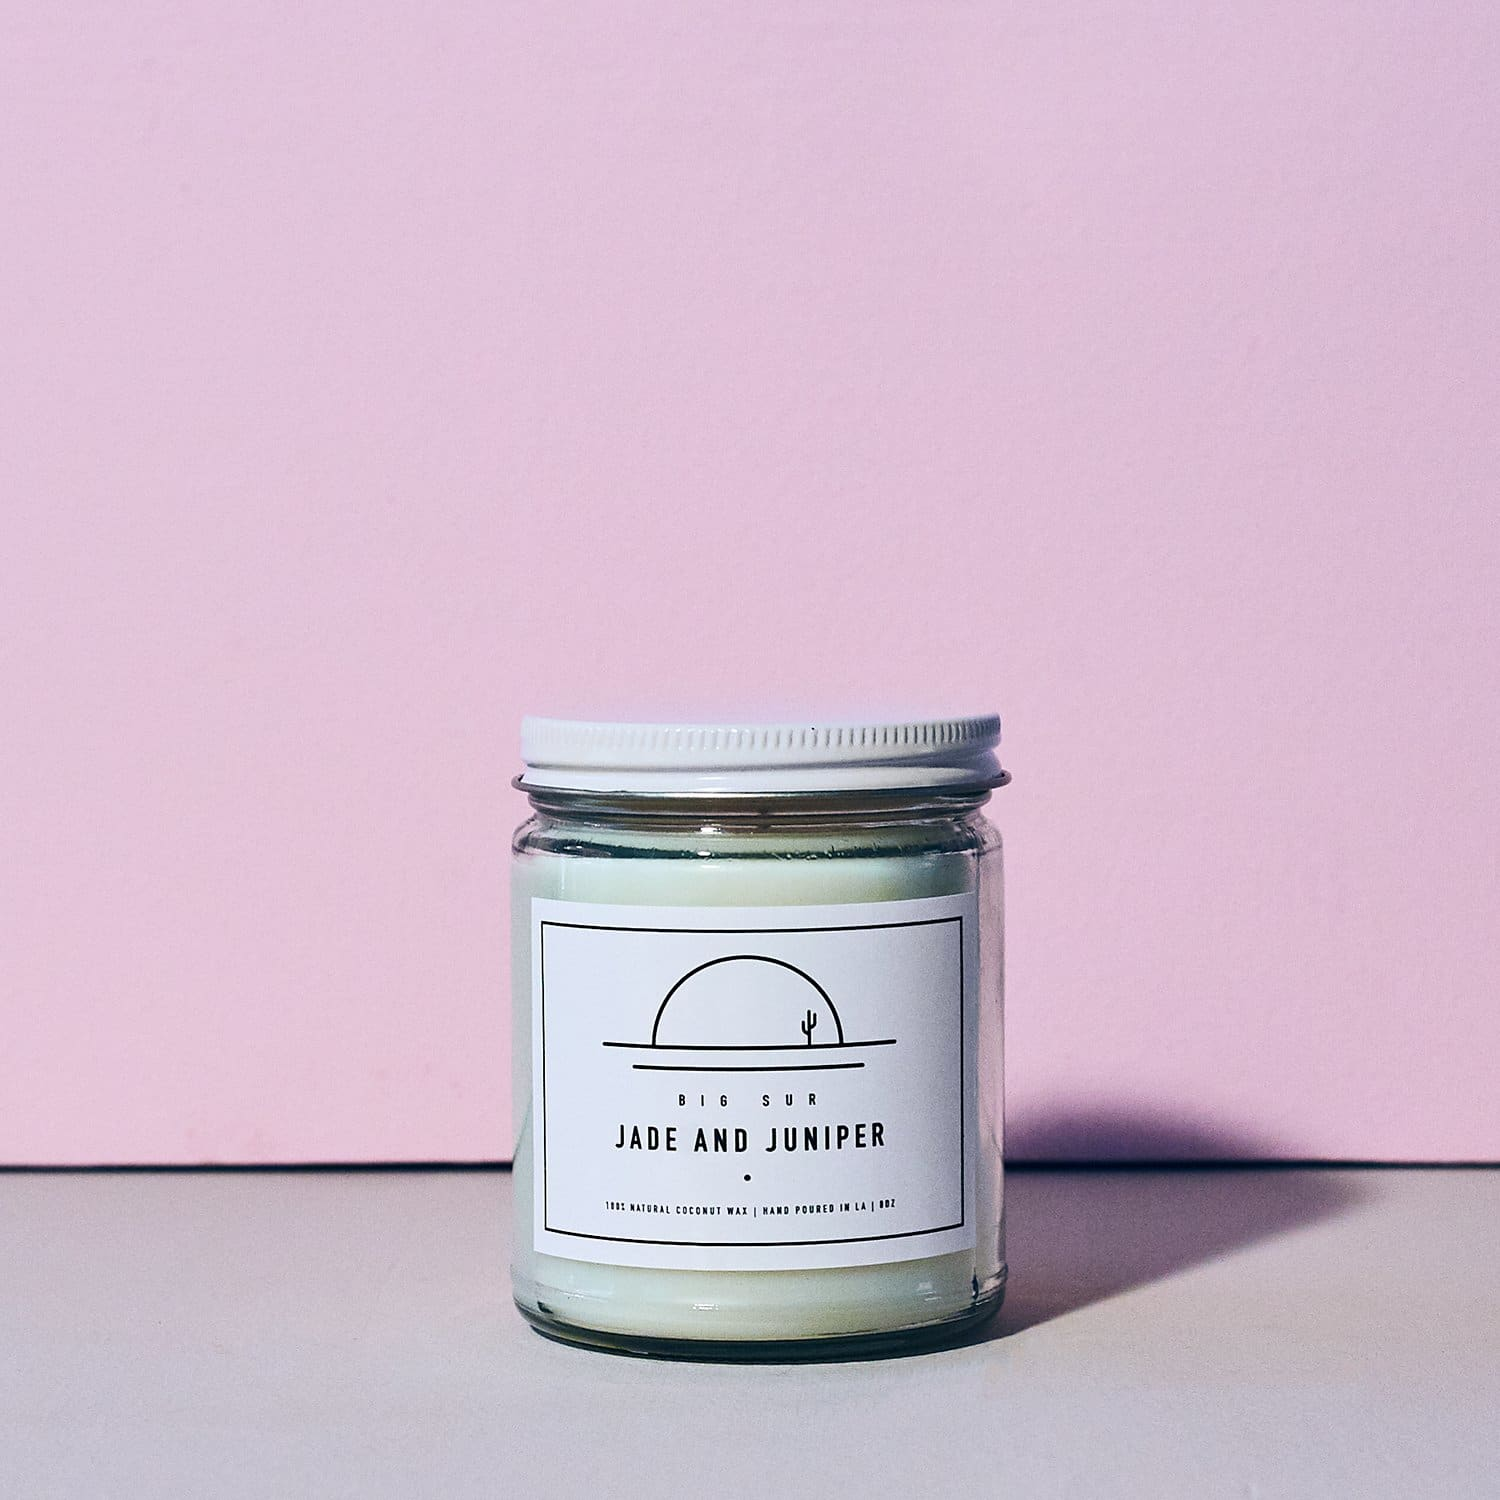 Jade and Juniper Candle - Big Sur Candle - Earthy - Home